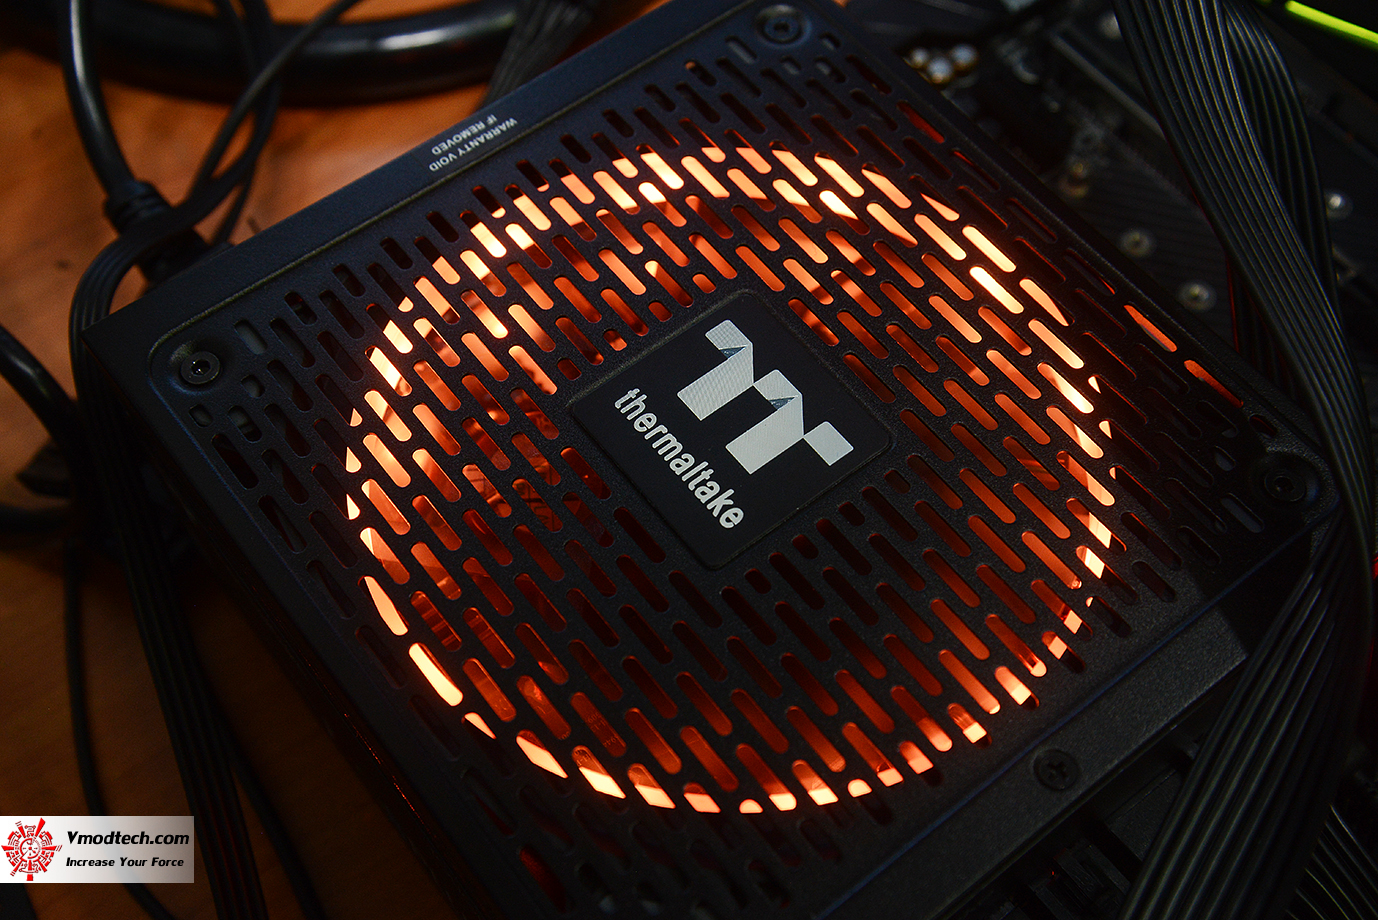 dsc 1944 Thermaltake Toughpower iRGB PLUS 1050W Platinum Review